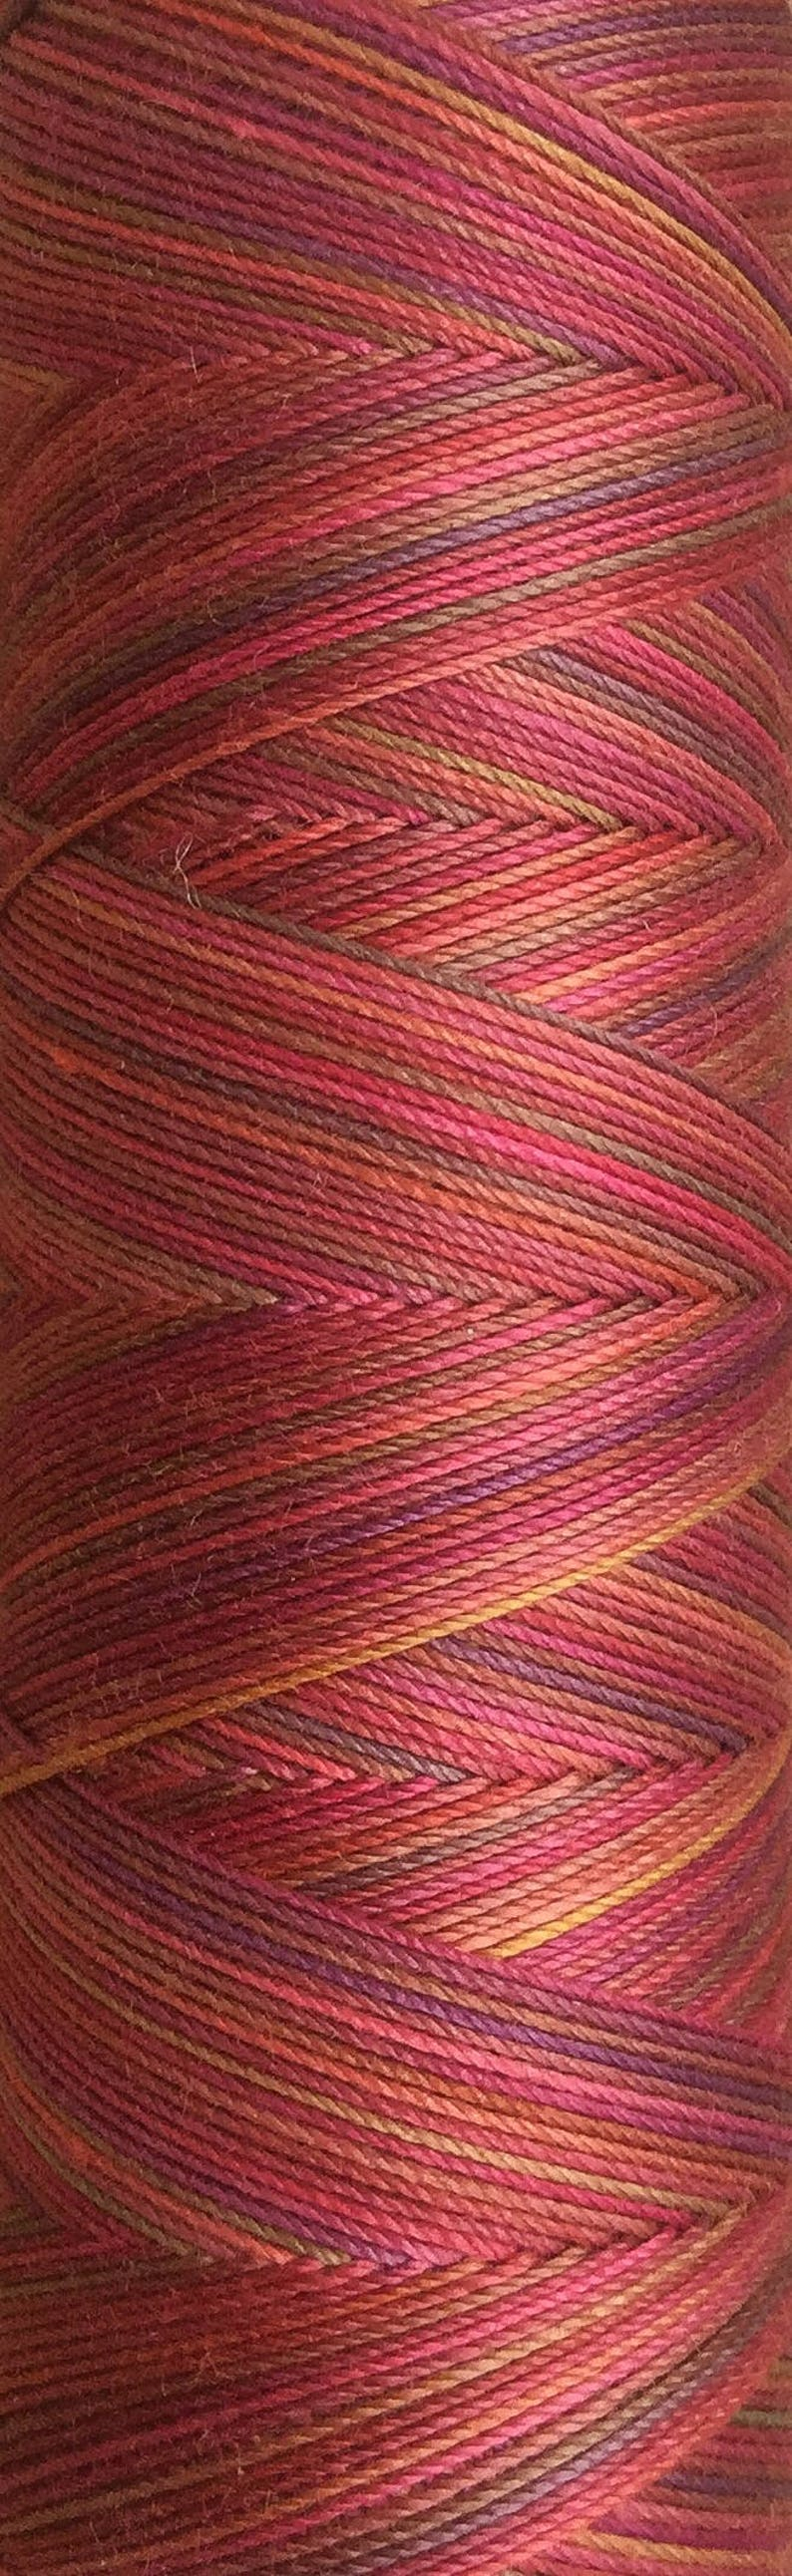 No.02 Antique Red Hand Dyed Cotton Machine Thread Individual image 0